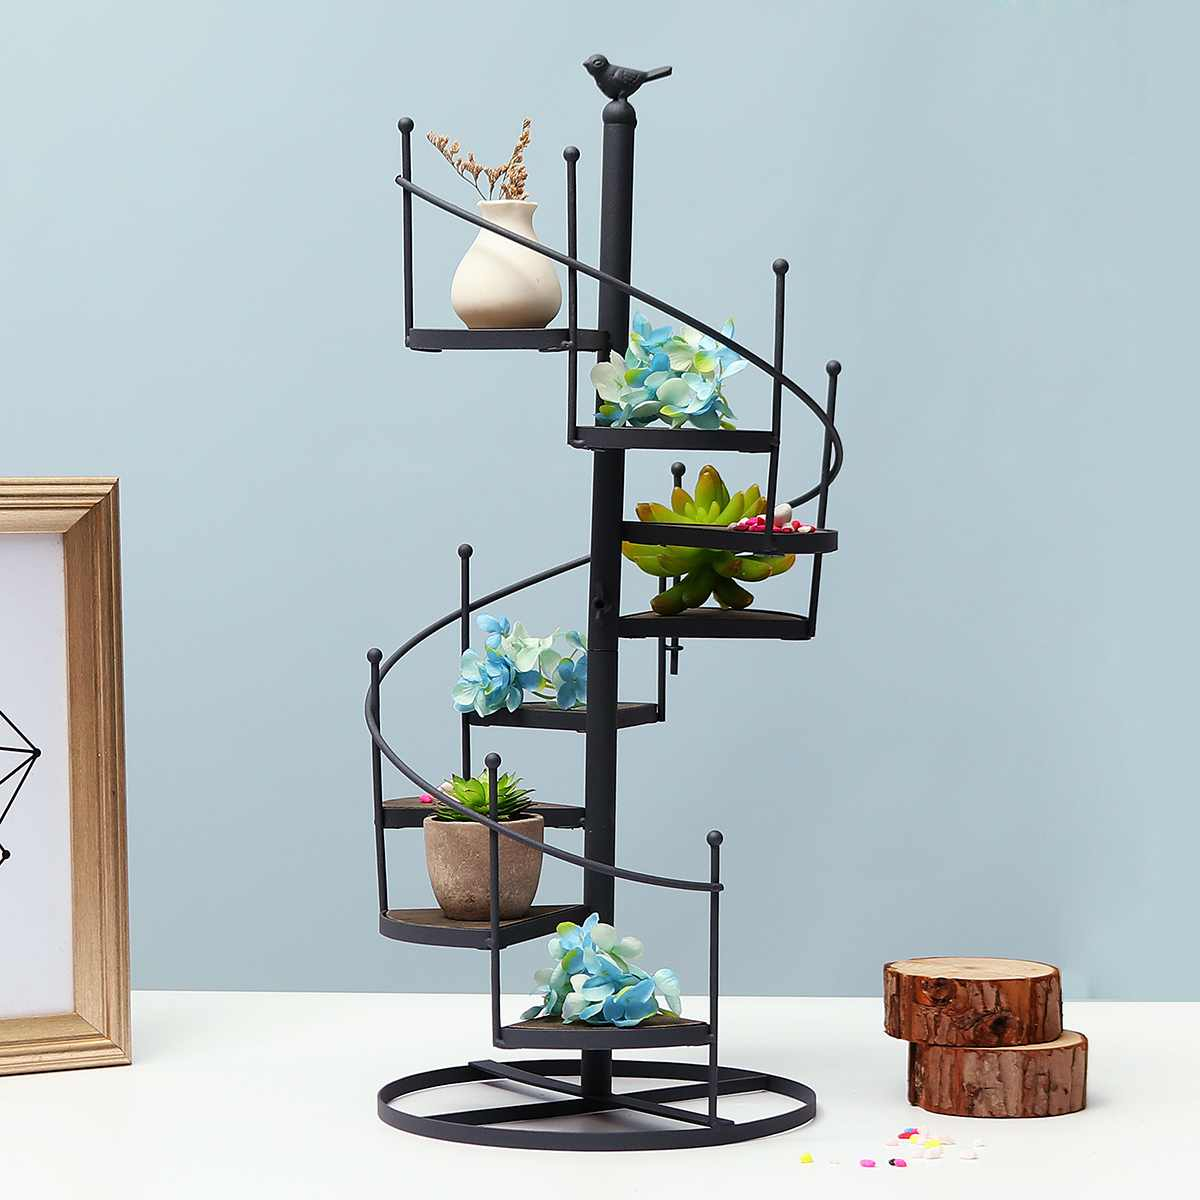 8 Layer Stair Shape Iron Plant Rack Metal Stand Plants Succulent Shelf Desktop Garden Flower Modern Decorative With Wood Plate